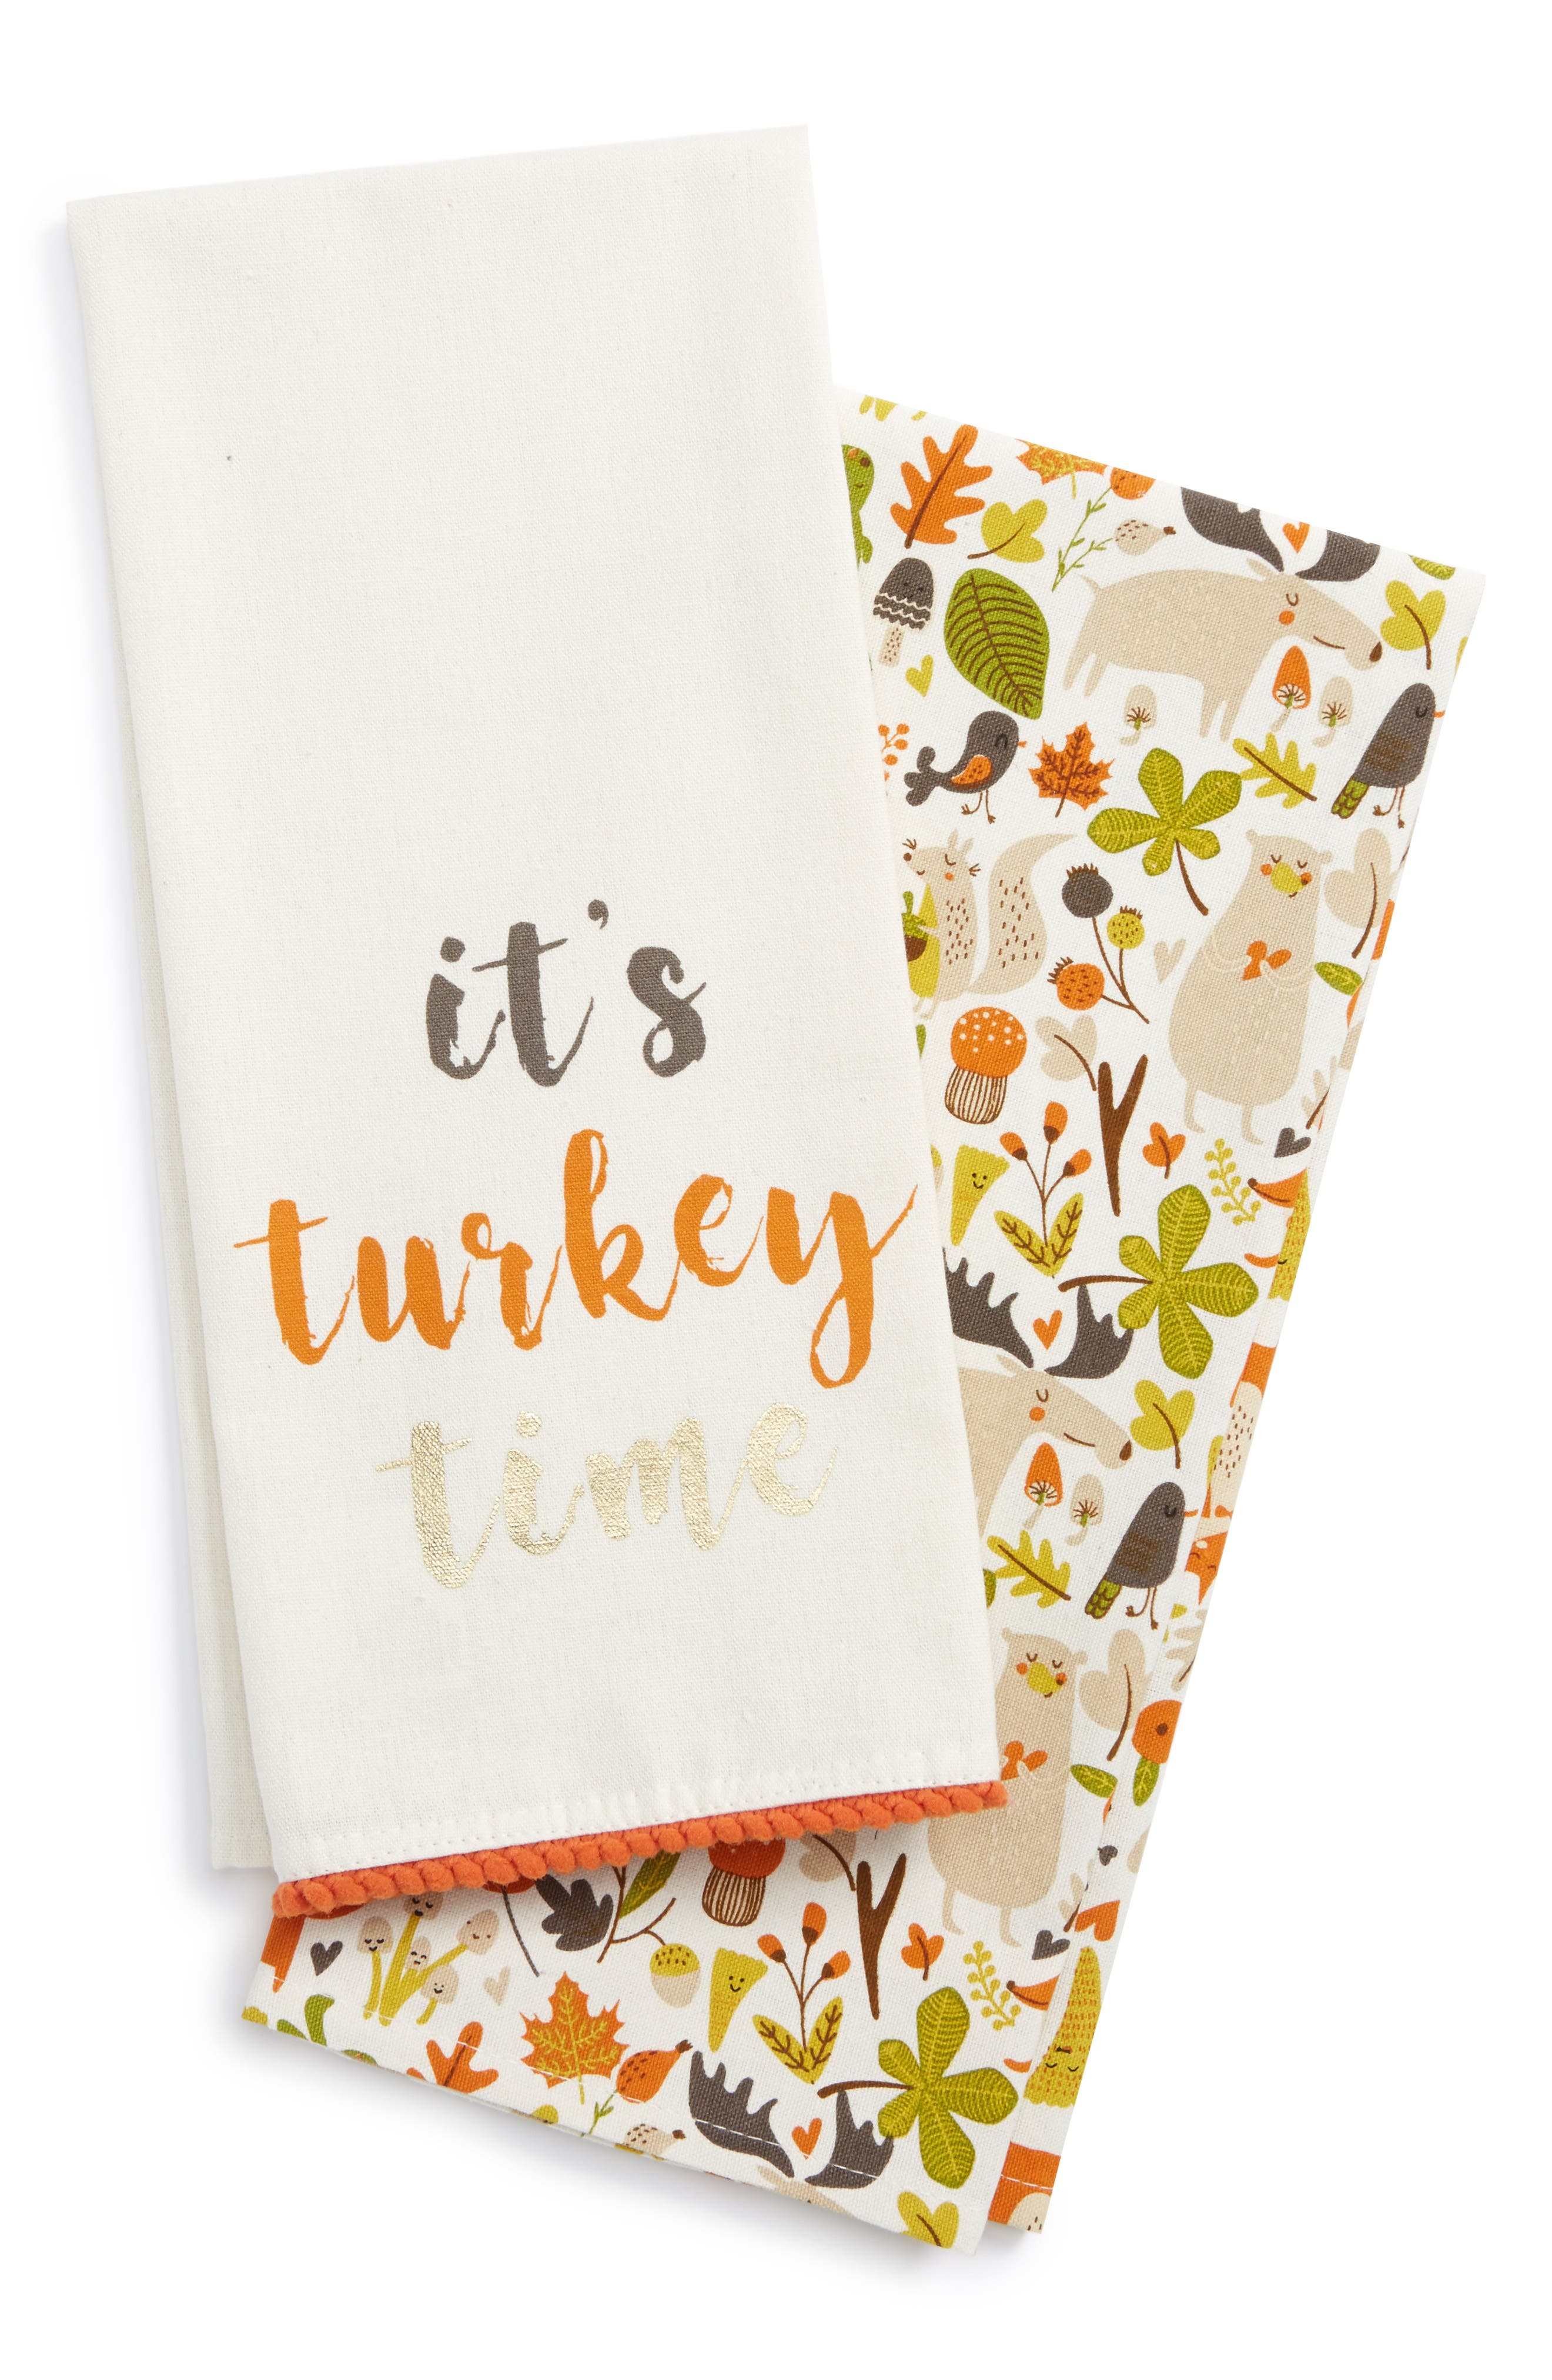 Alternate Image 1 Selected - Levtex Turkey Time Set of 2 Dish Towels